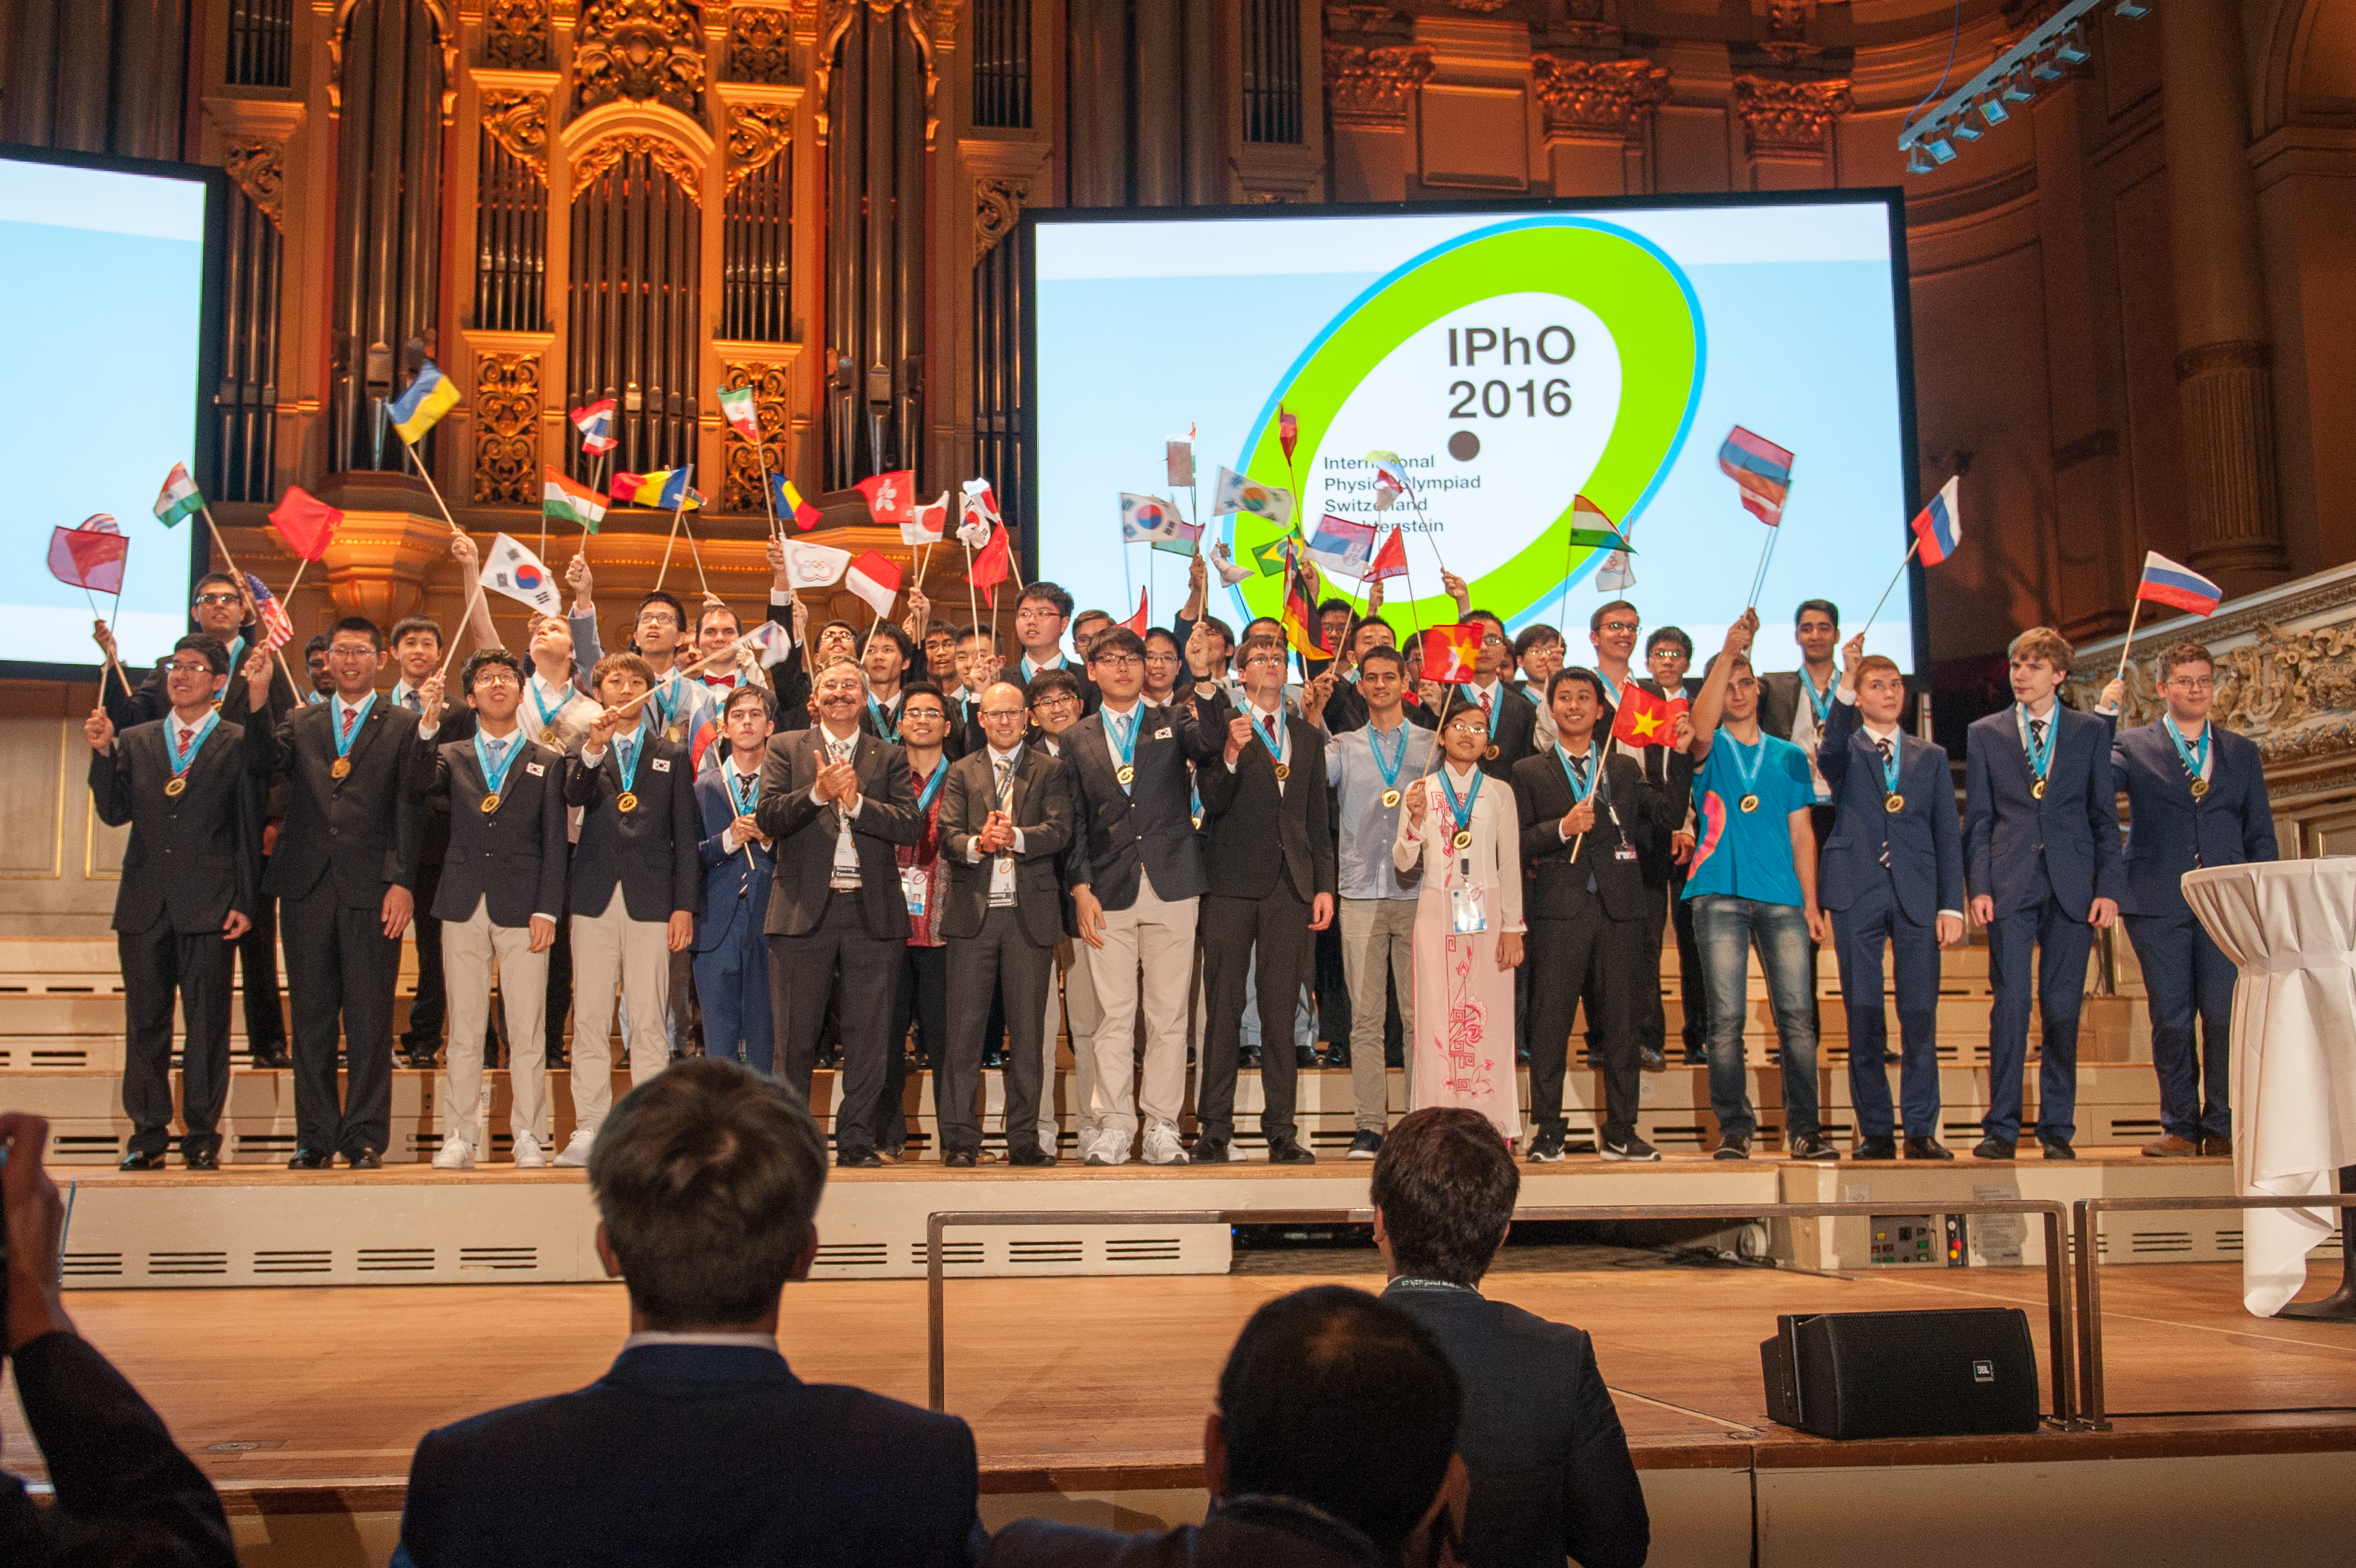 UZH - Medals Awarded to Physics Talent at the International Physics